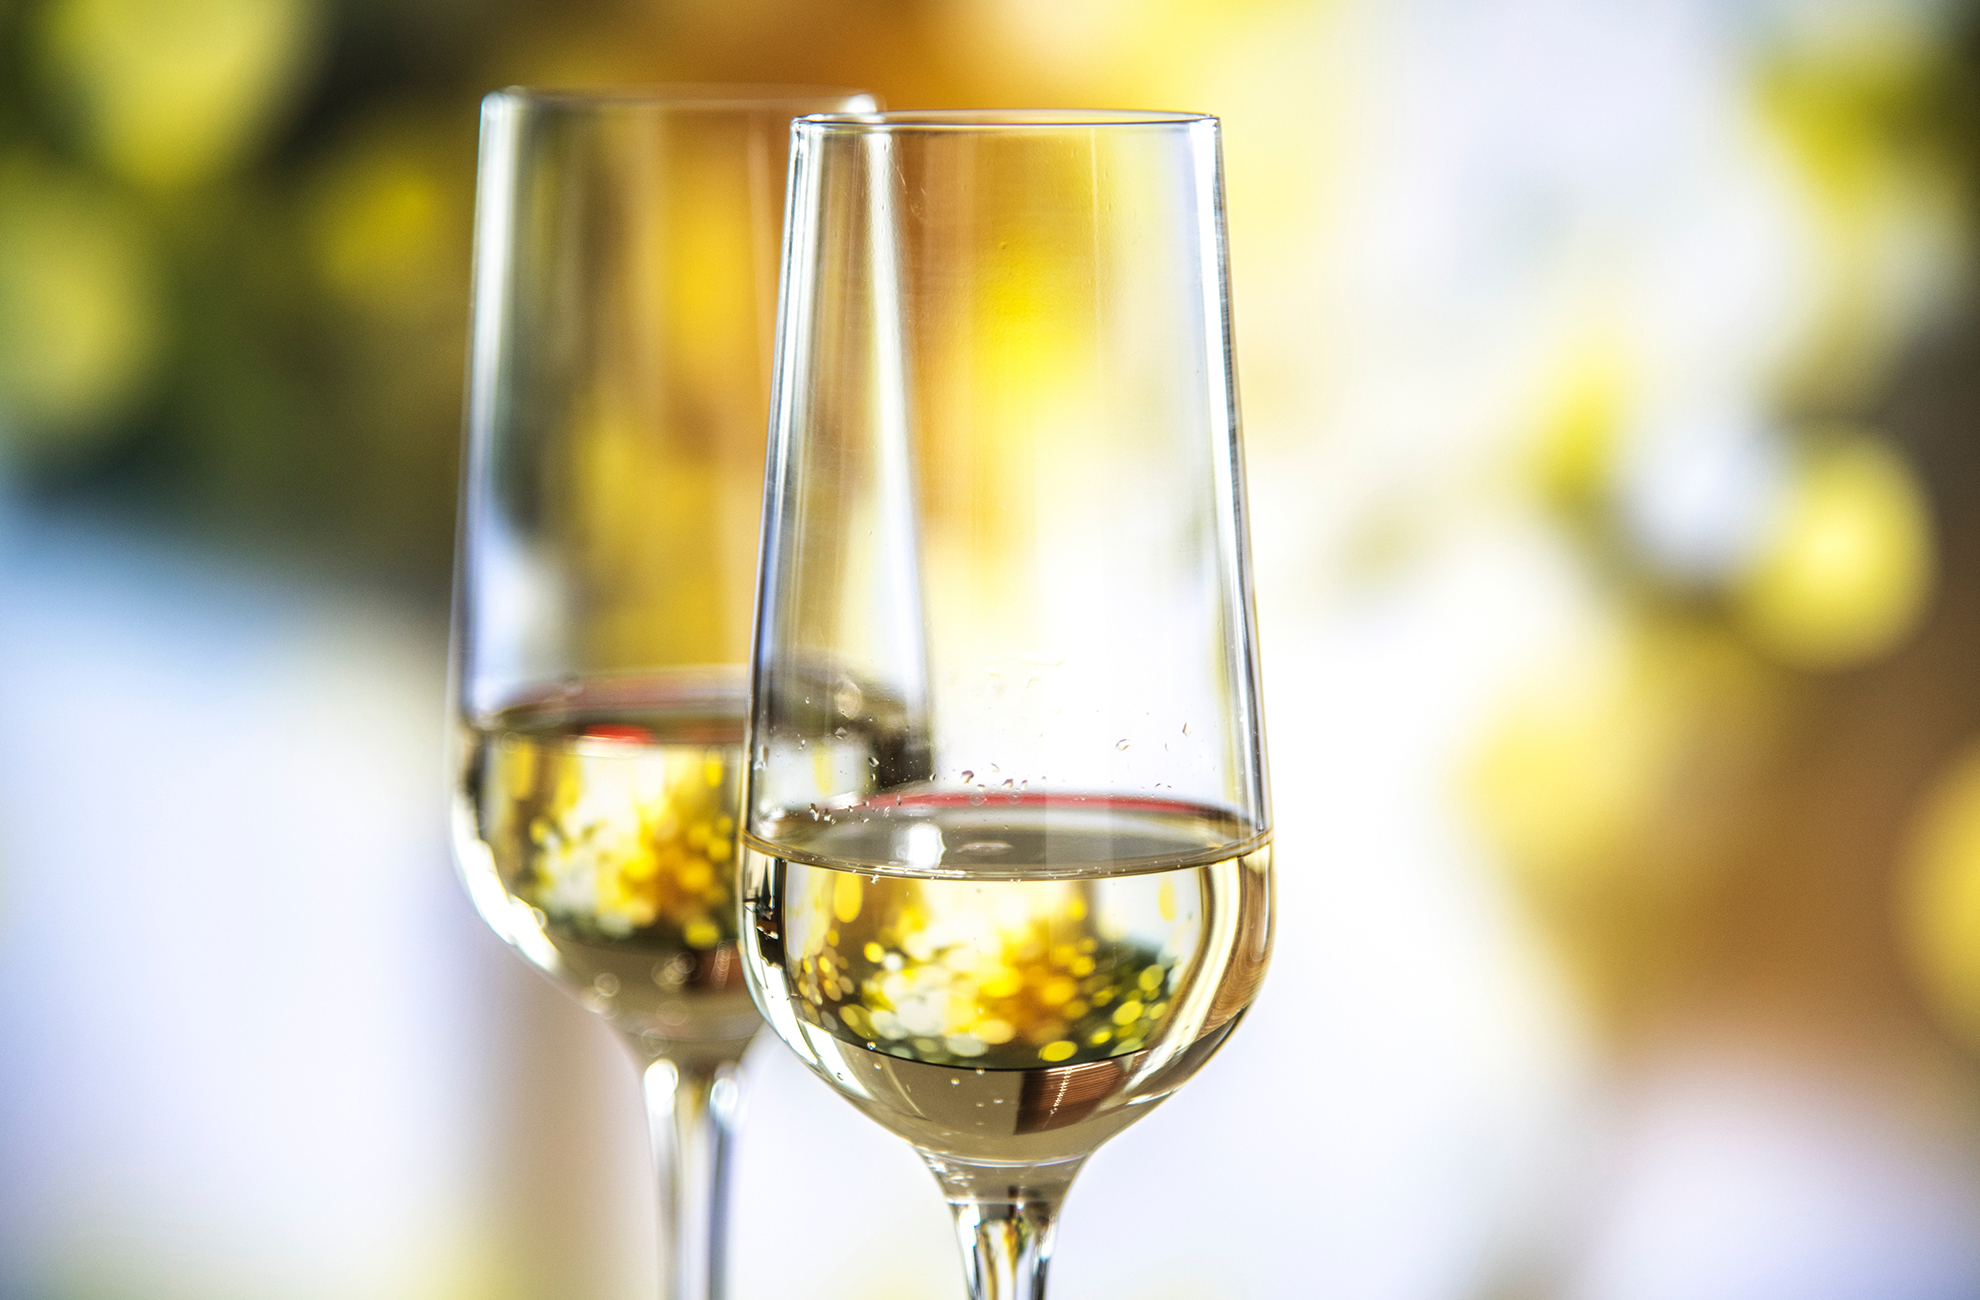 Treat yourself to a glass of prosecco during your stay at Combermere Abbey